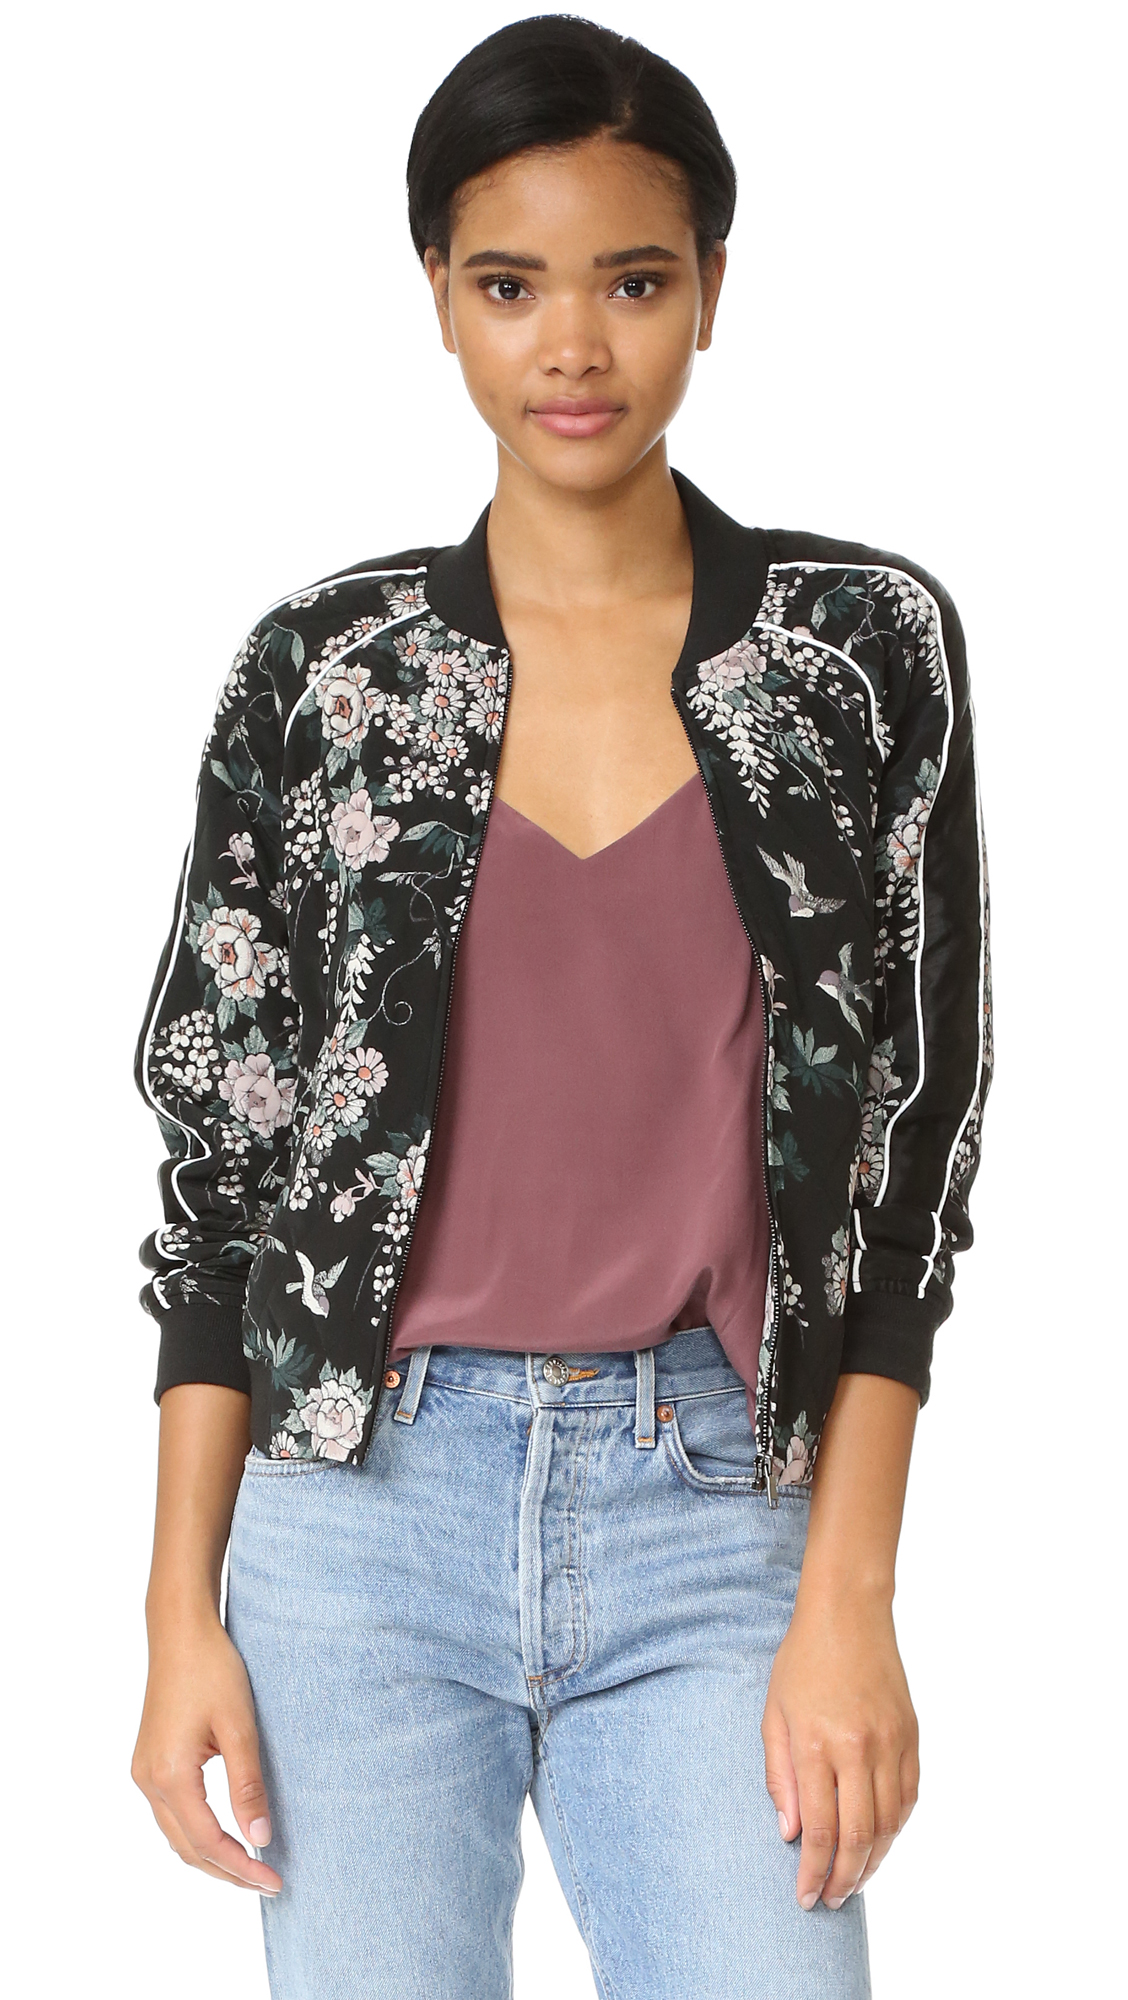 Joie Mace Bomber - Caviar at Shopbop